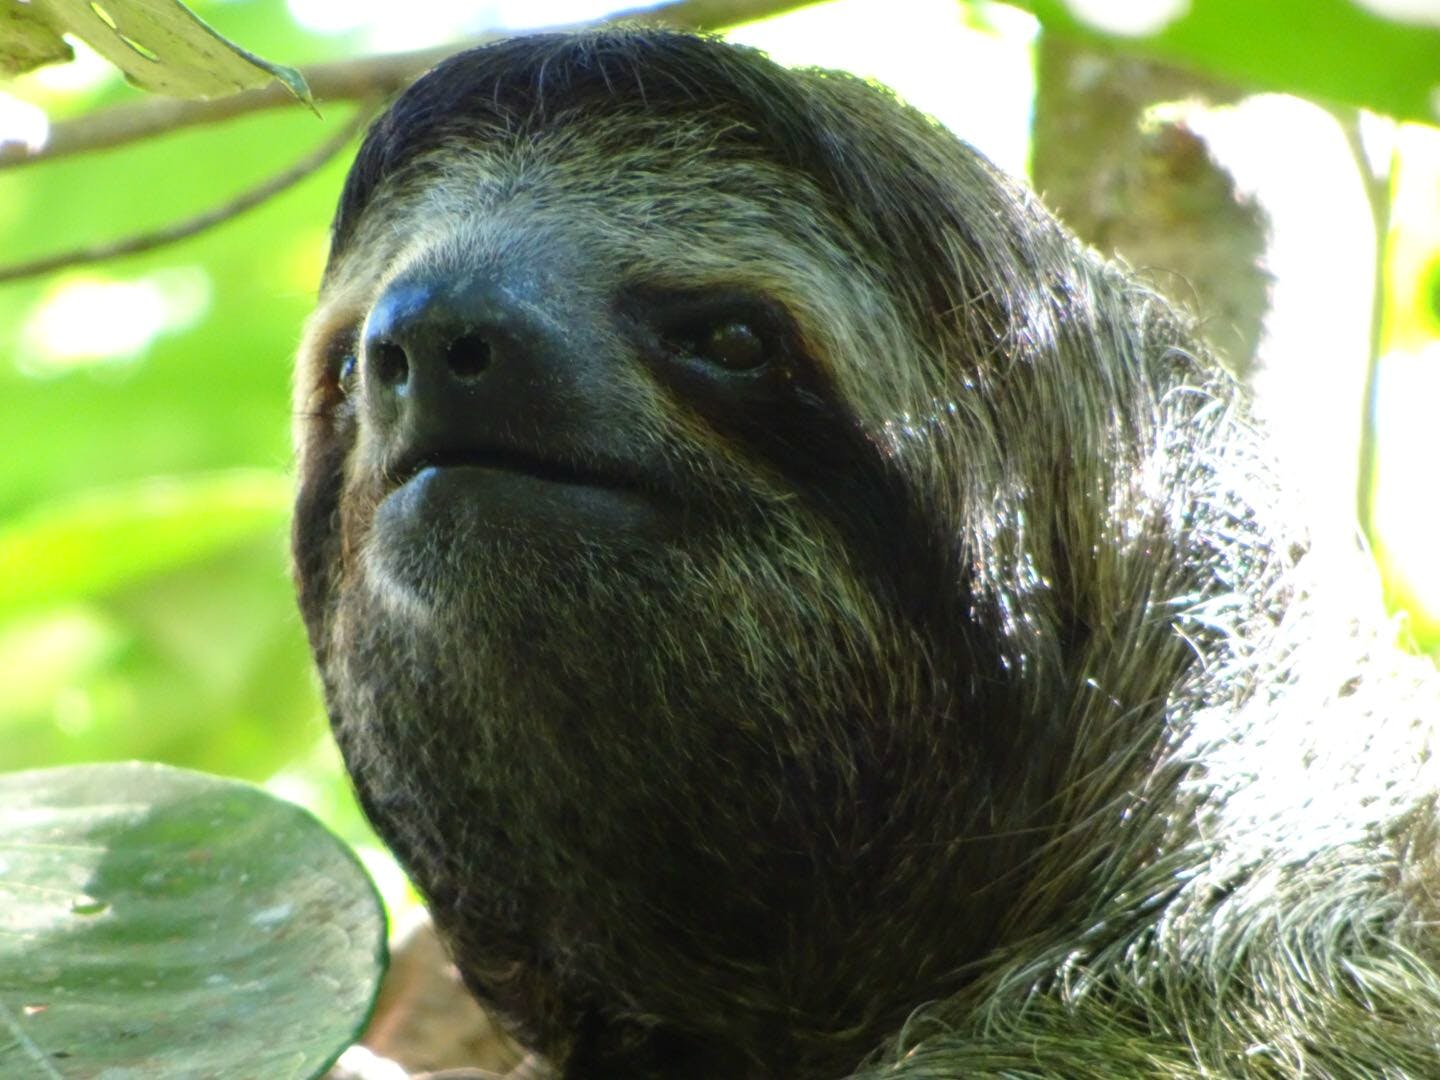 Sloth monitoring and turtle conservation